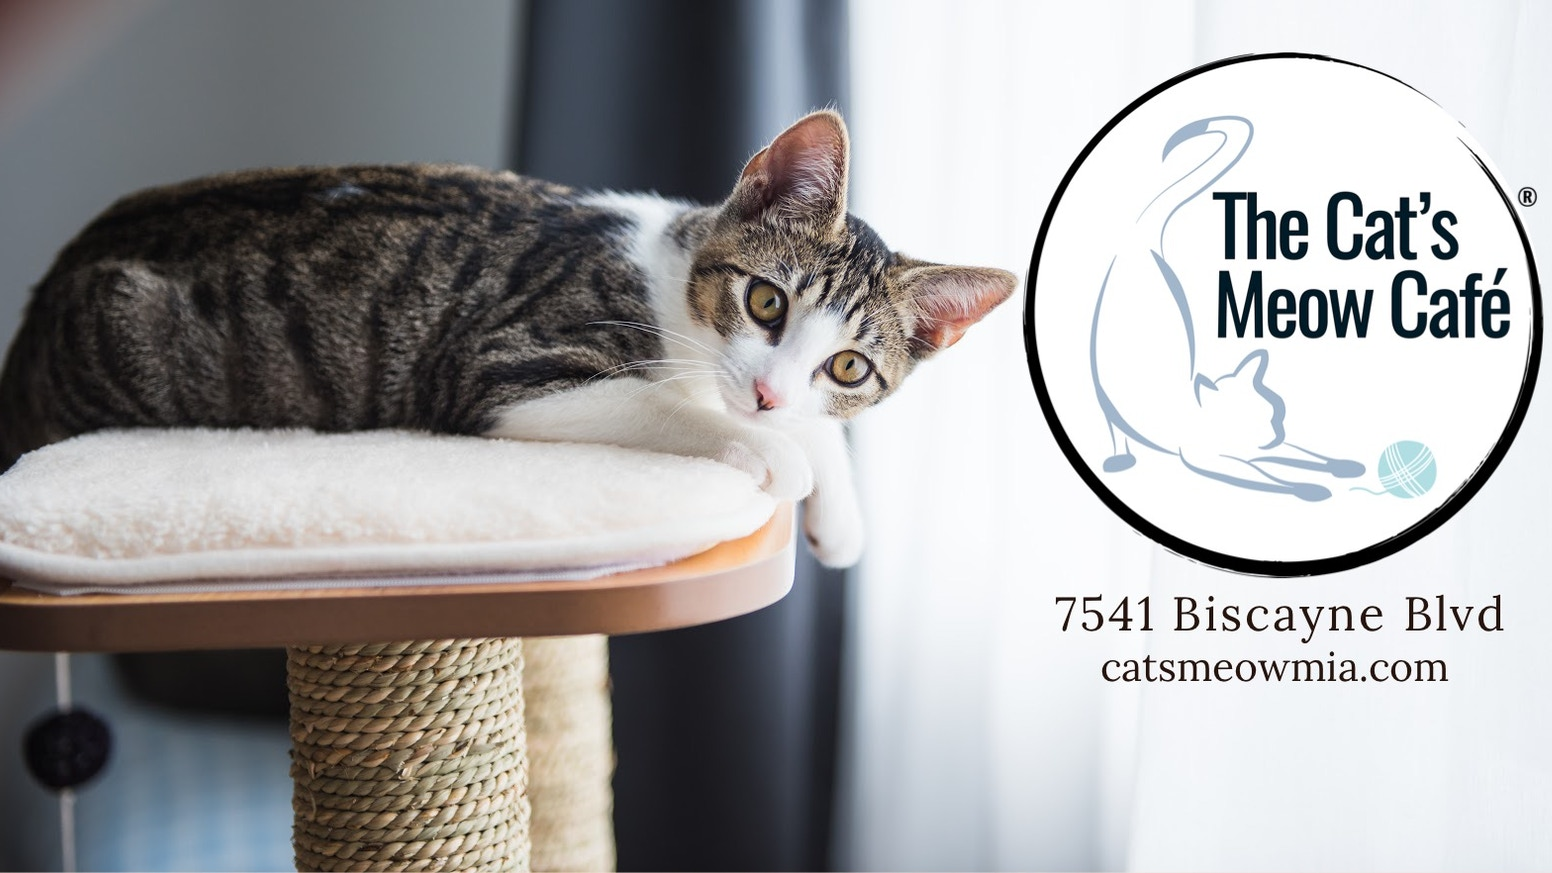 A unique cat café experience that ties in coffee with rescued cats.